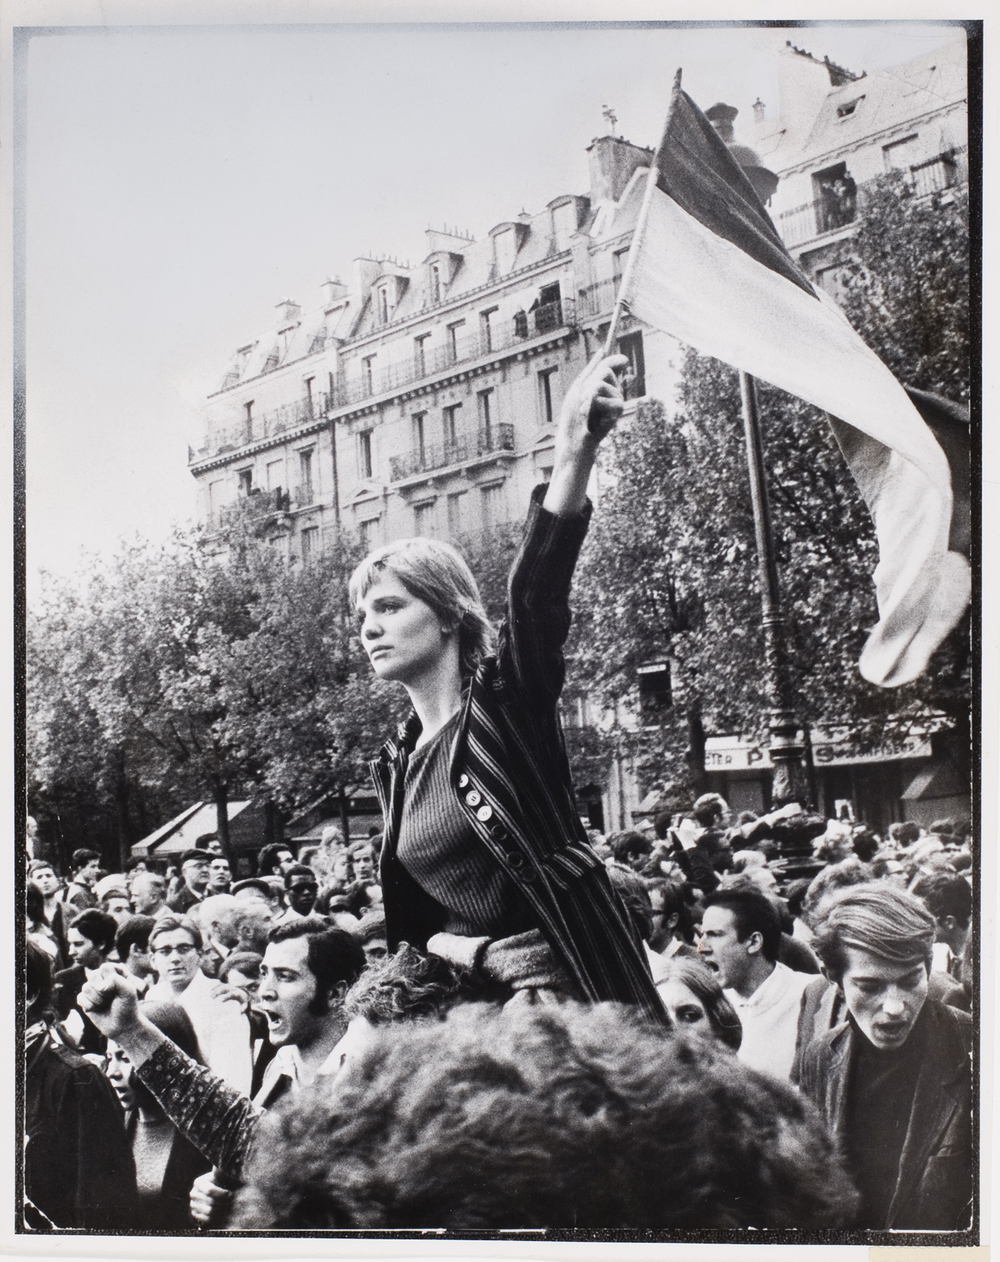 Jean-Pierre Rey, [Girl waving flag in crowd during general strike, Paris], May 1968